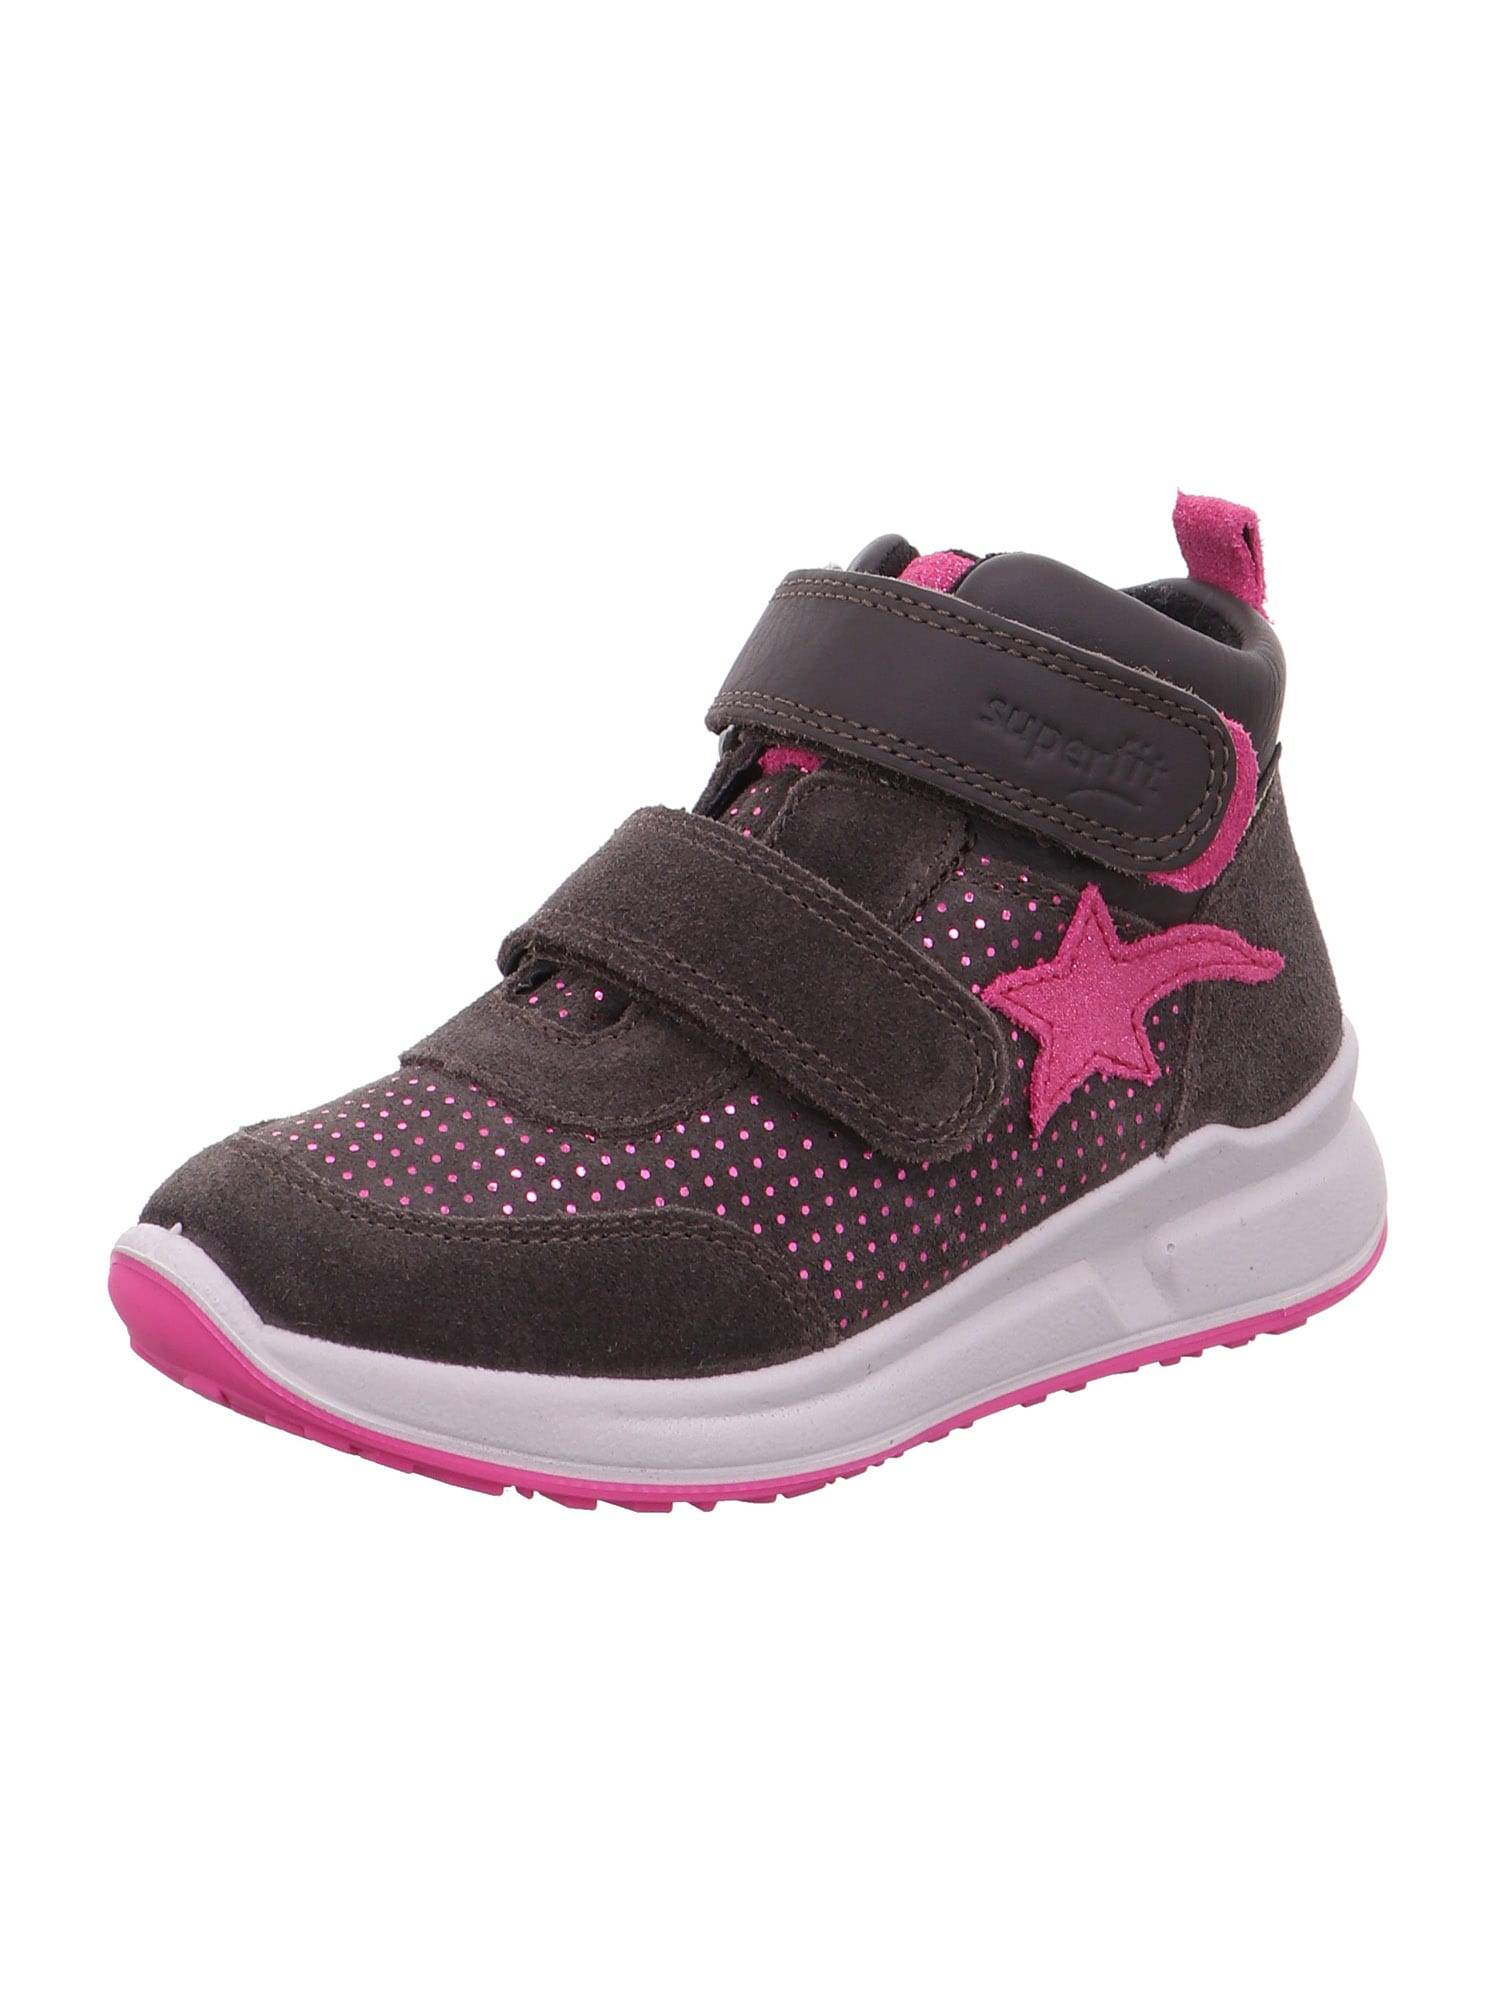 SUPERFIT Baskets 'MERIDA'  - Rose, Marron - Taille: 32 - girl